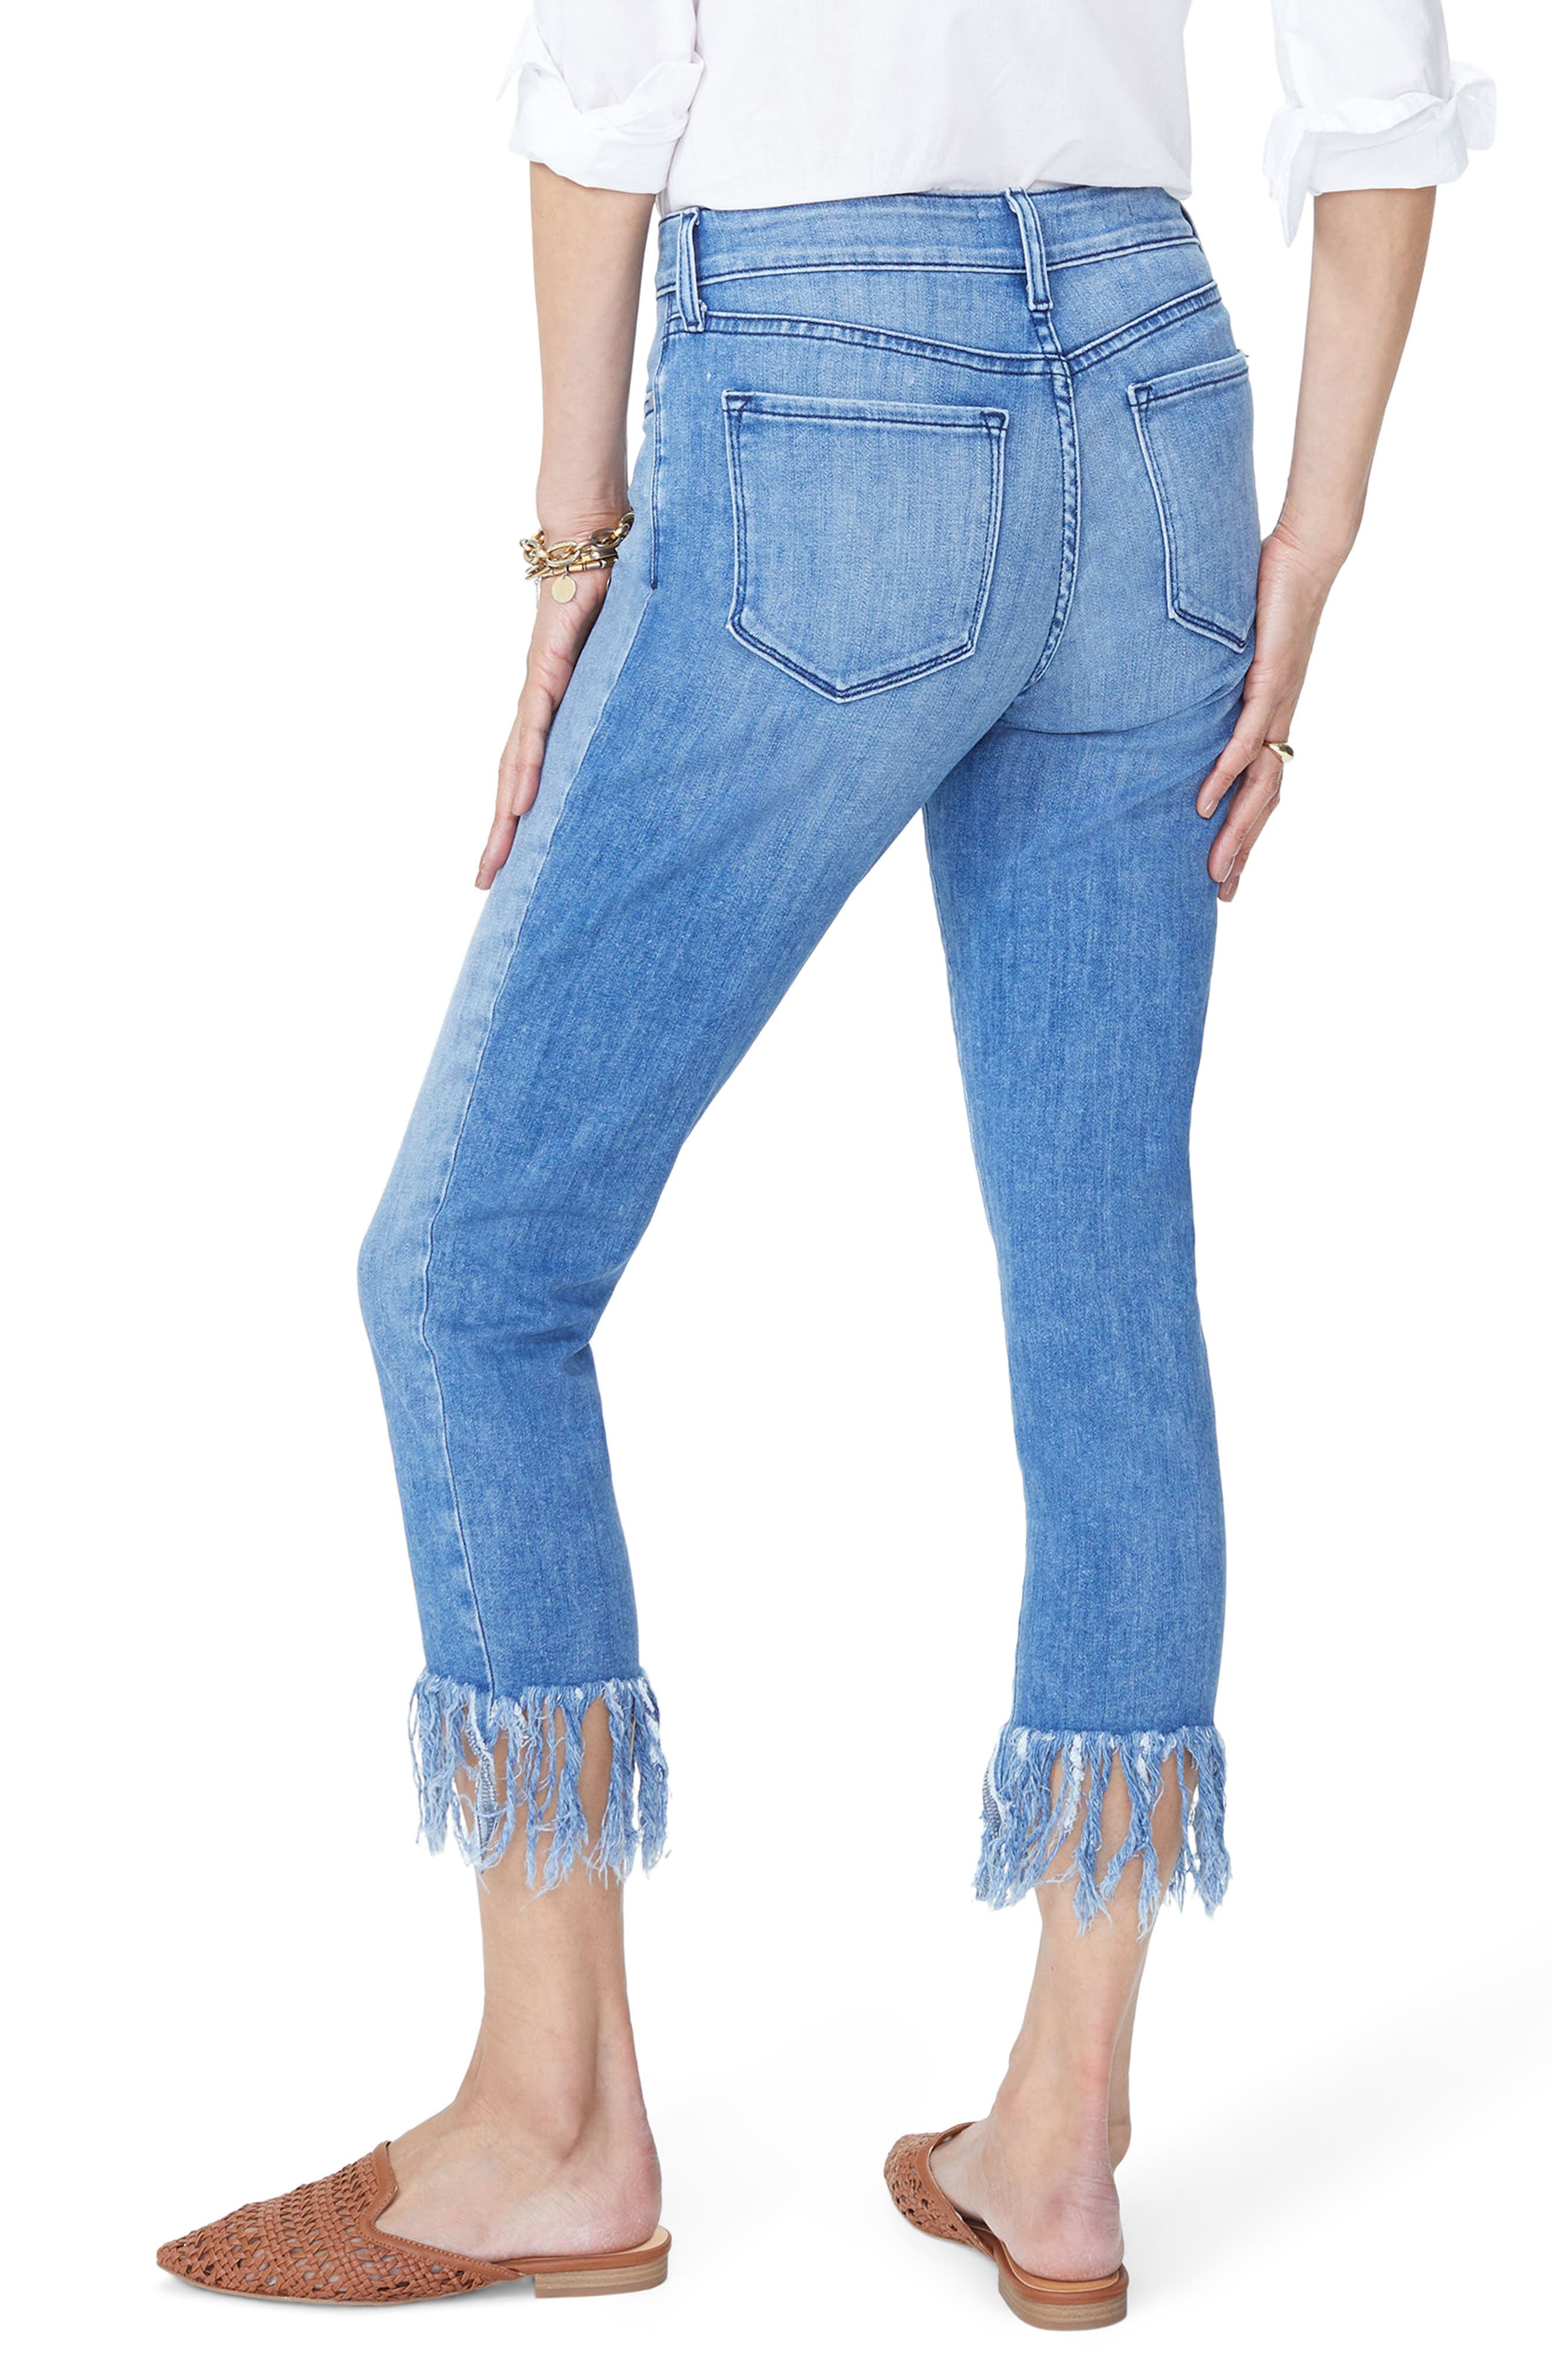 Ami High Waist Long Fray Skinny Stretch Ankle Jeans,                             Alternate thumbnail 2, color,                             425